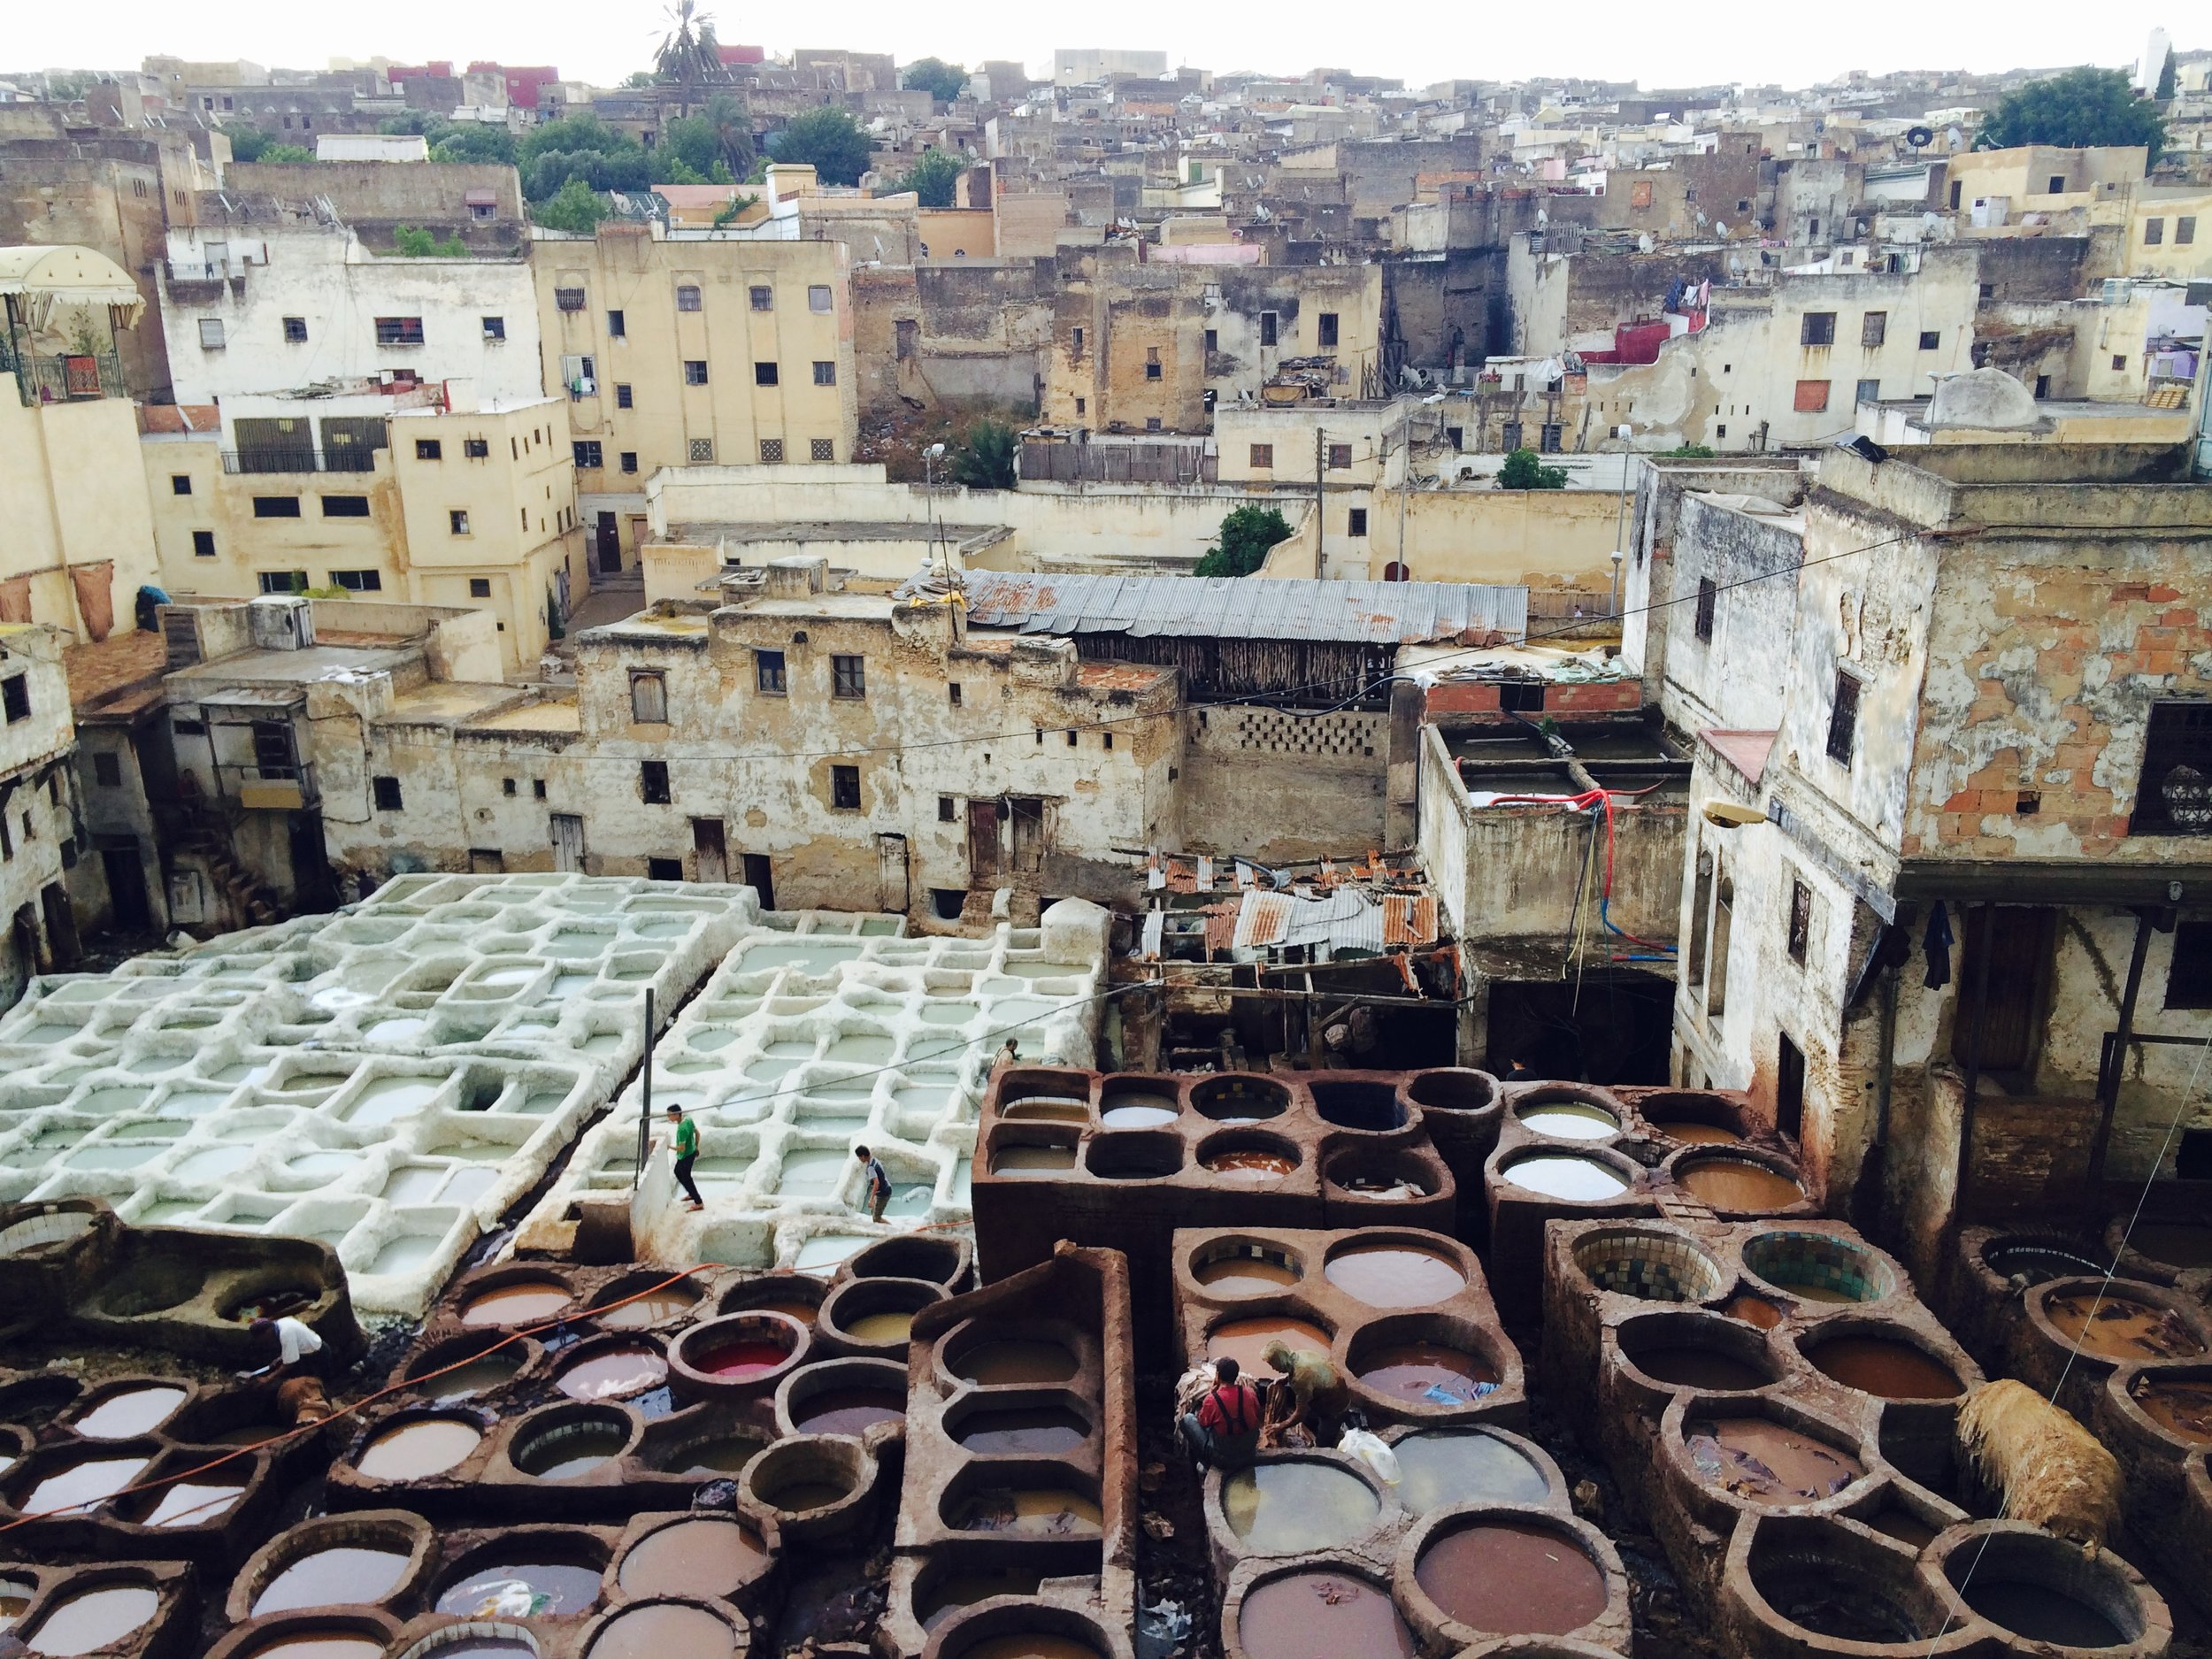 The Chouara Tannery on Fes, Morocco